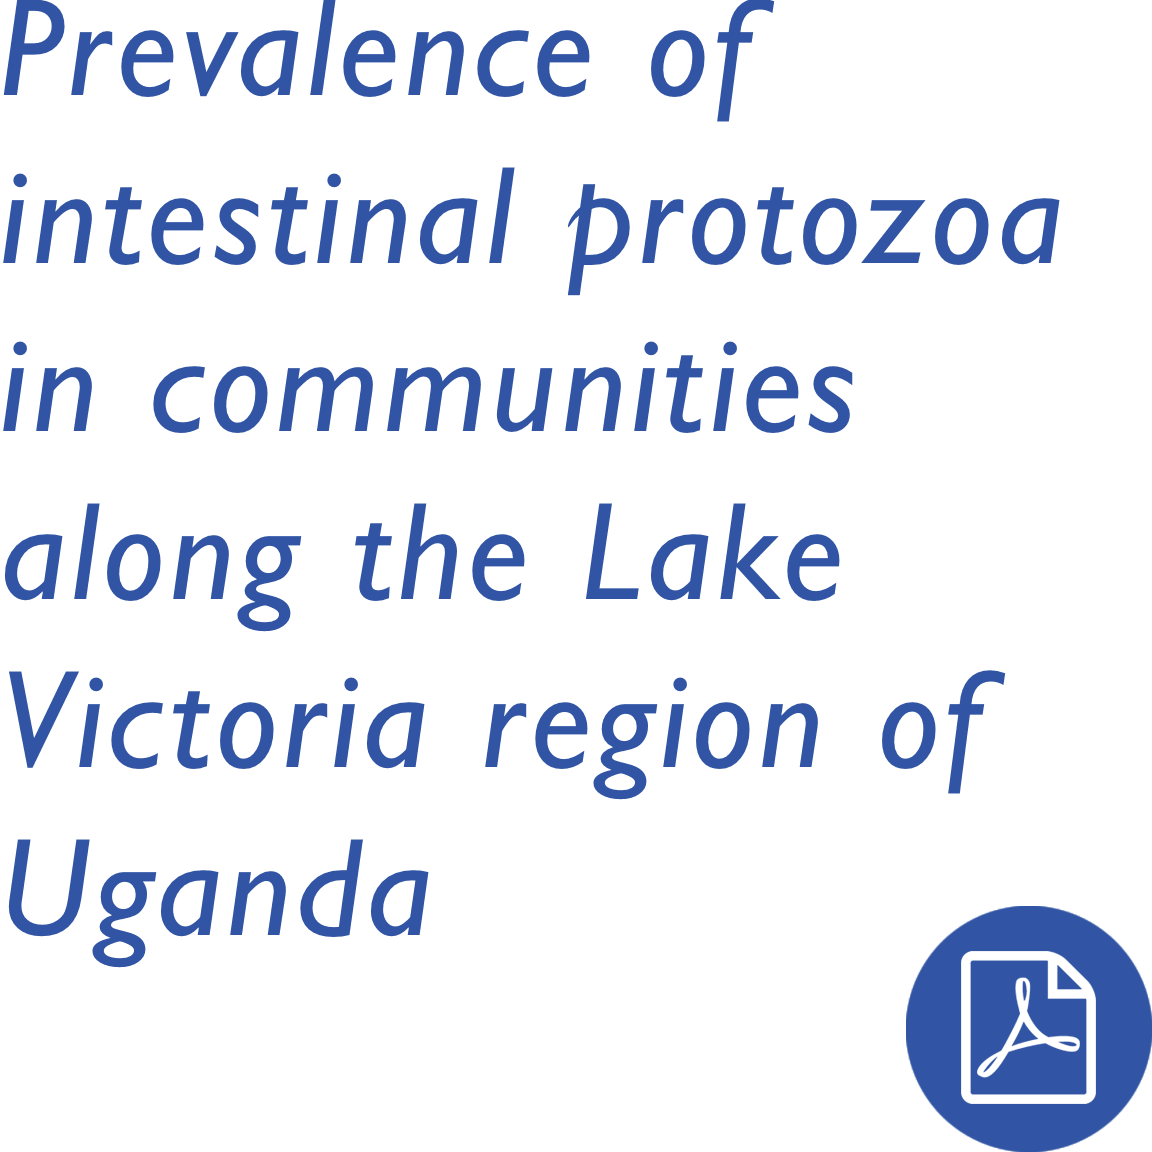 Prevalence of intestinal protozoa in communities along the Lake Victoria region of Uganda